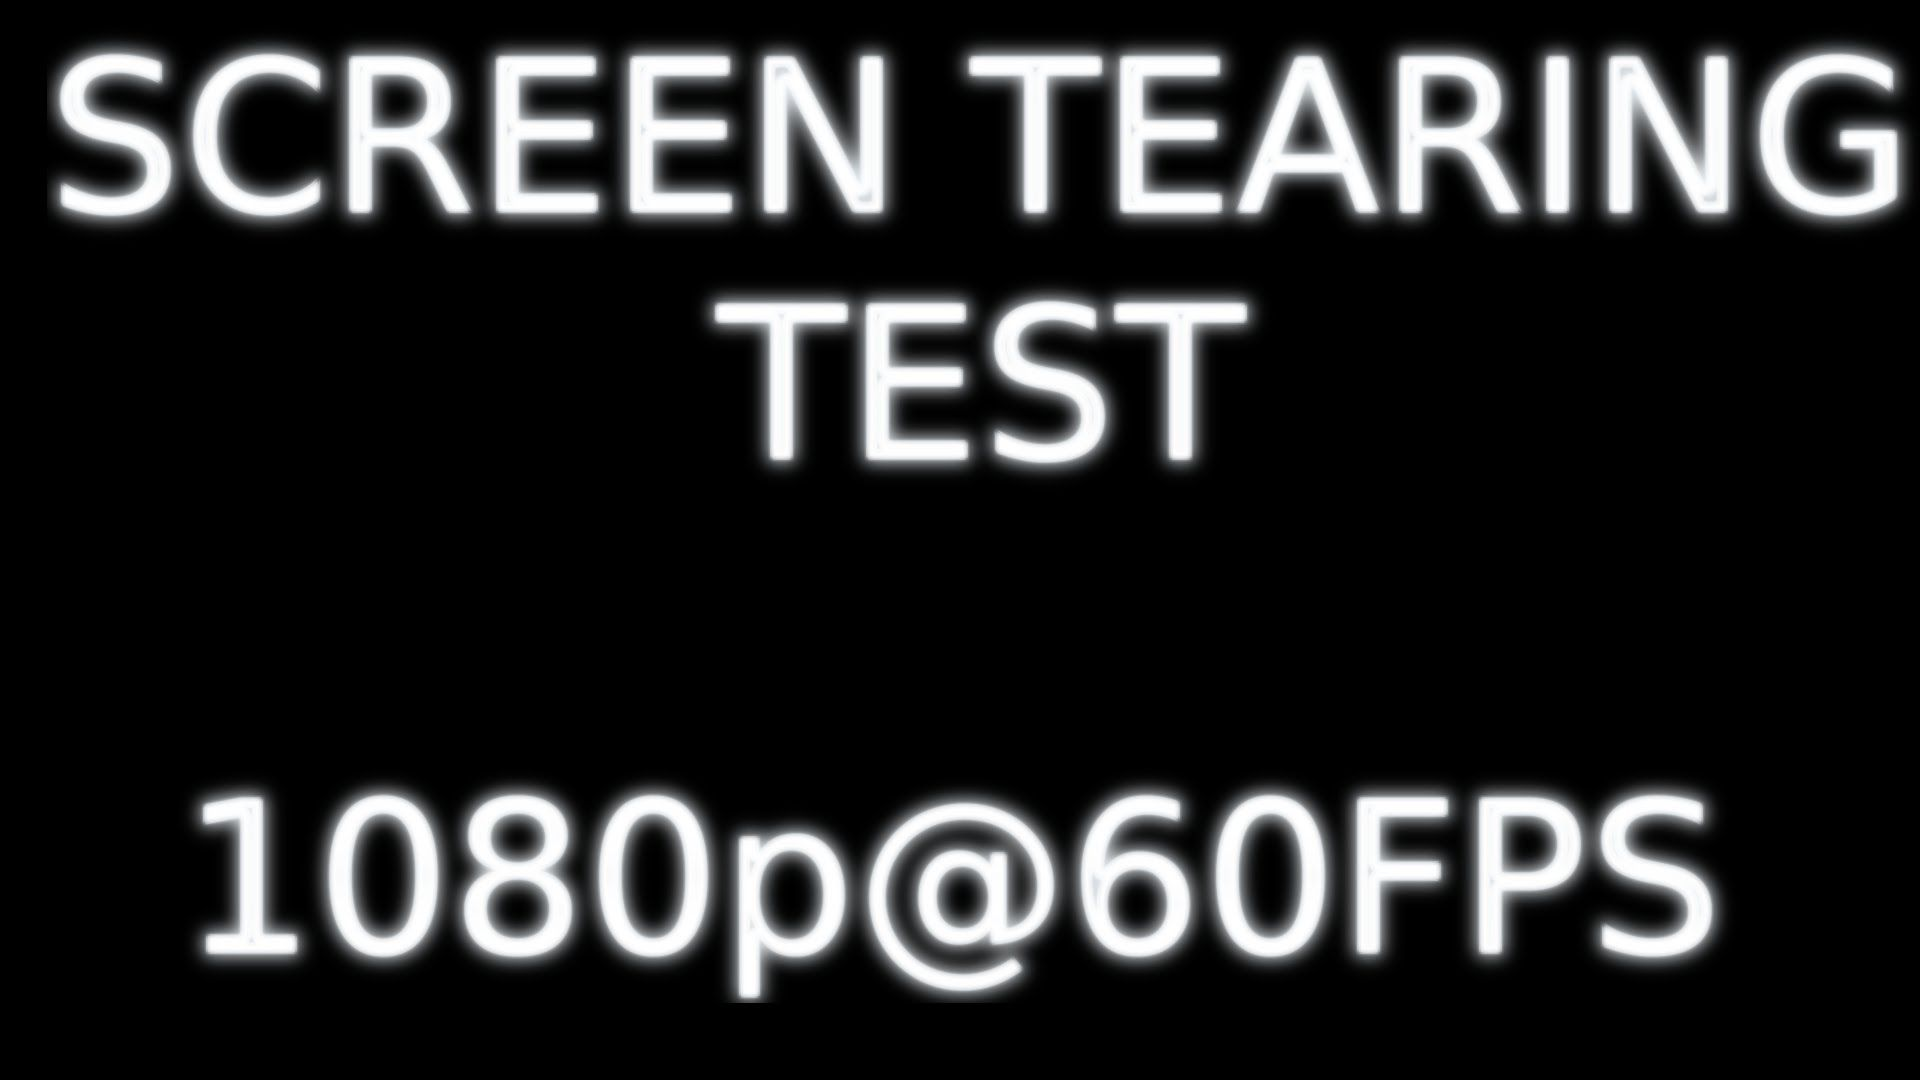 Screen Tearing Test 1080P@60fps | Linux On Youtube